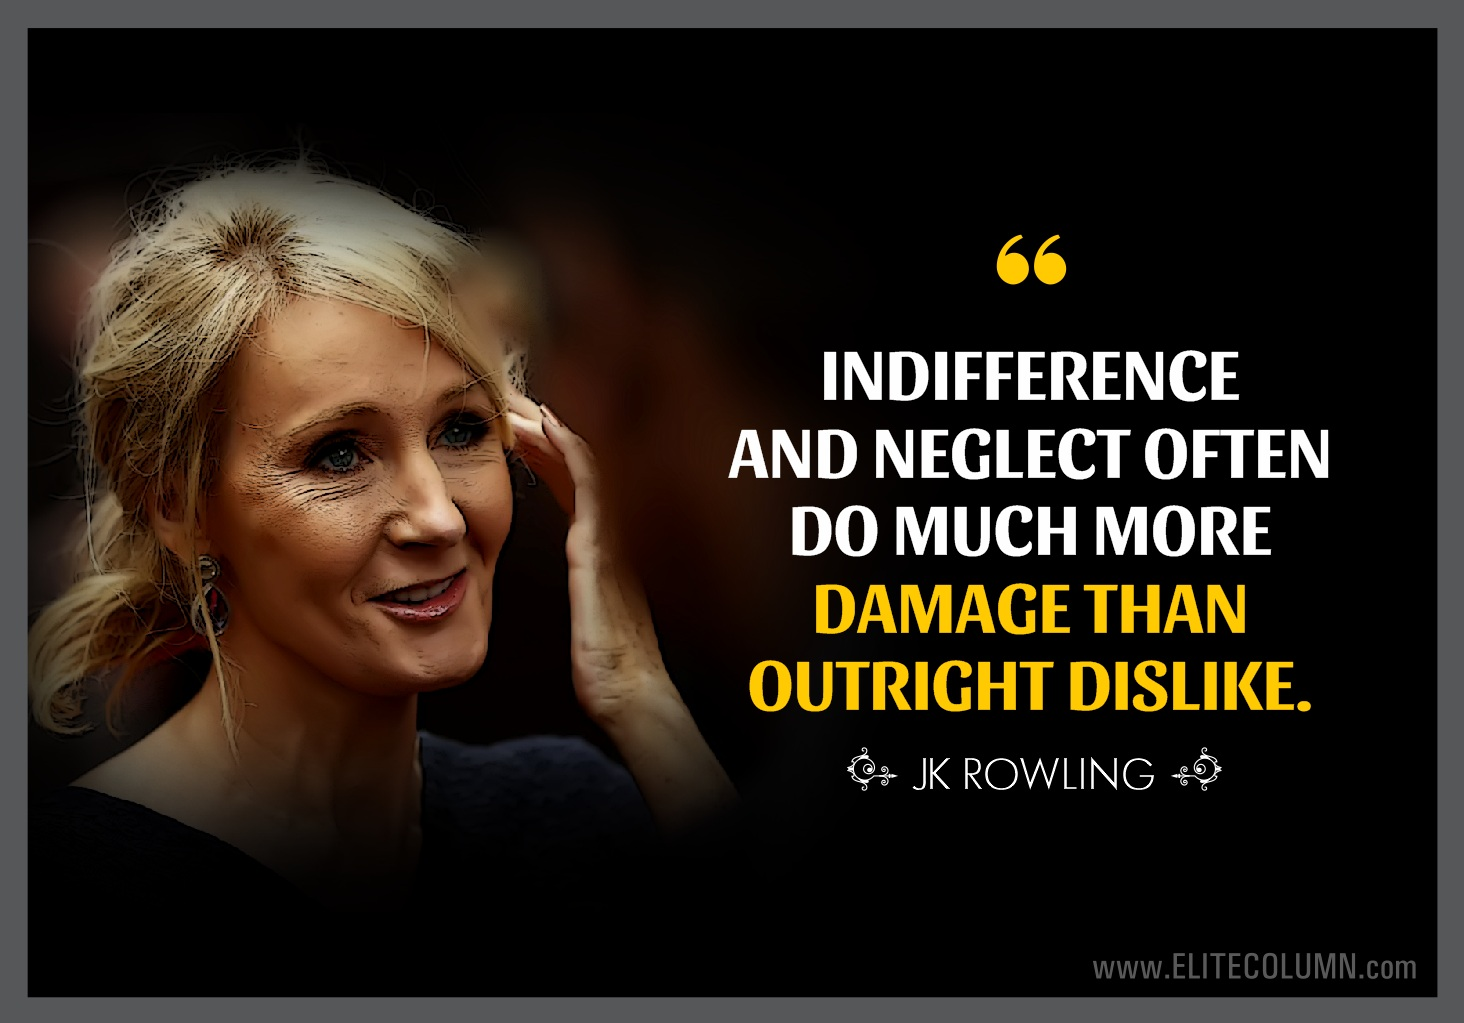 JK Rowling Quotes (11)